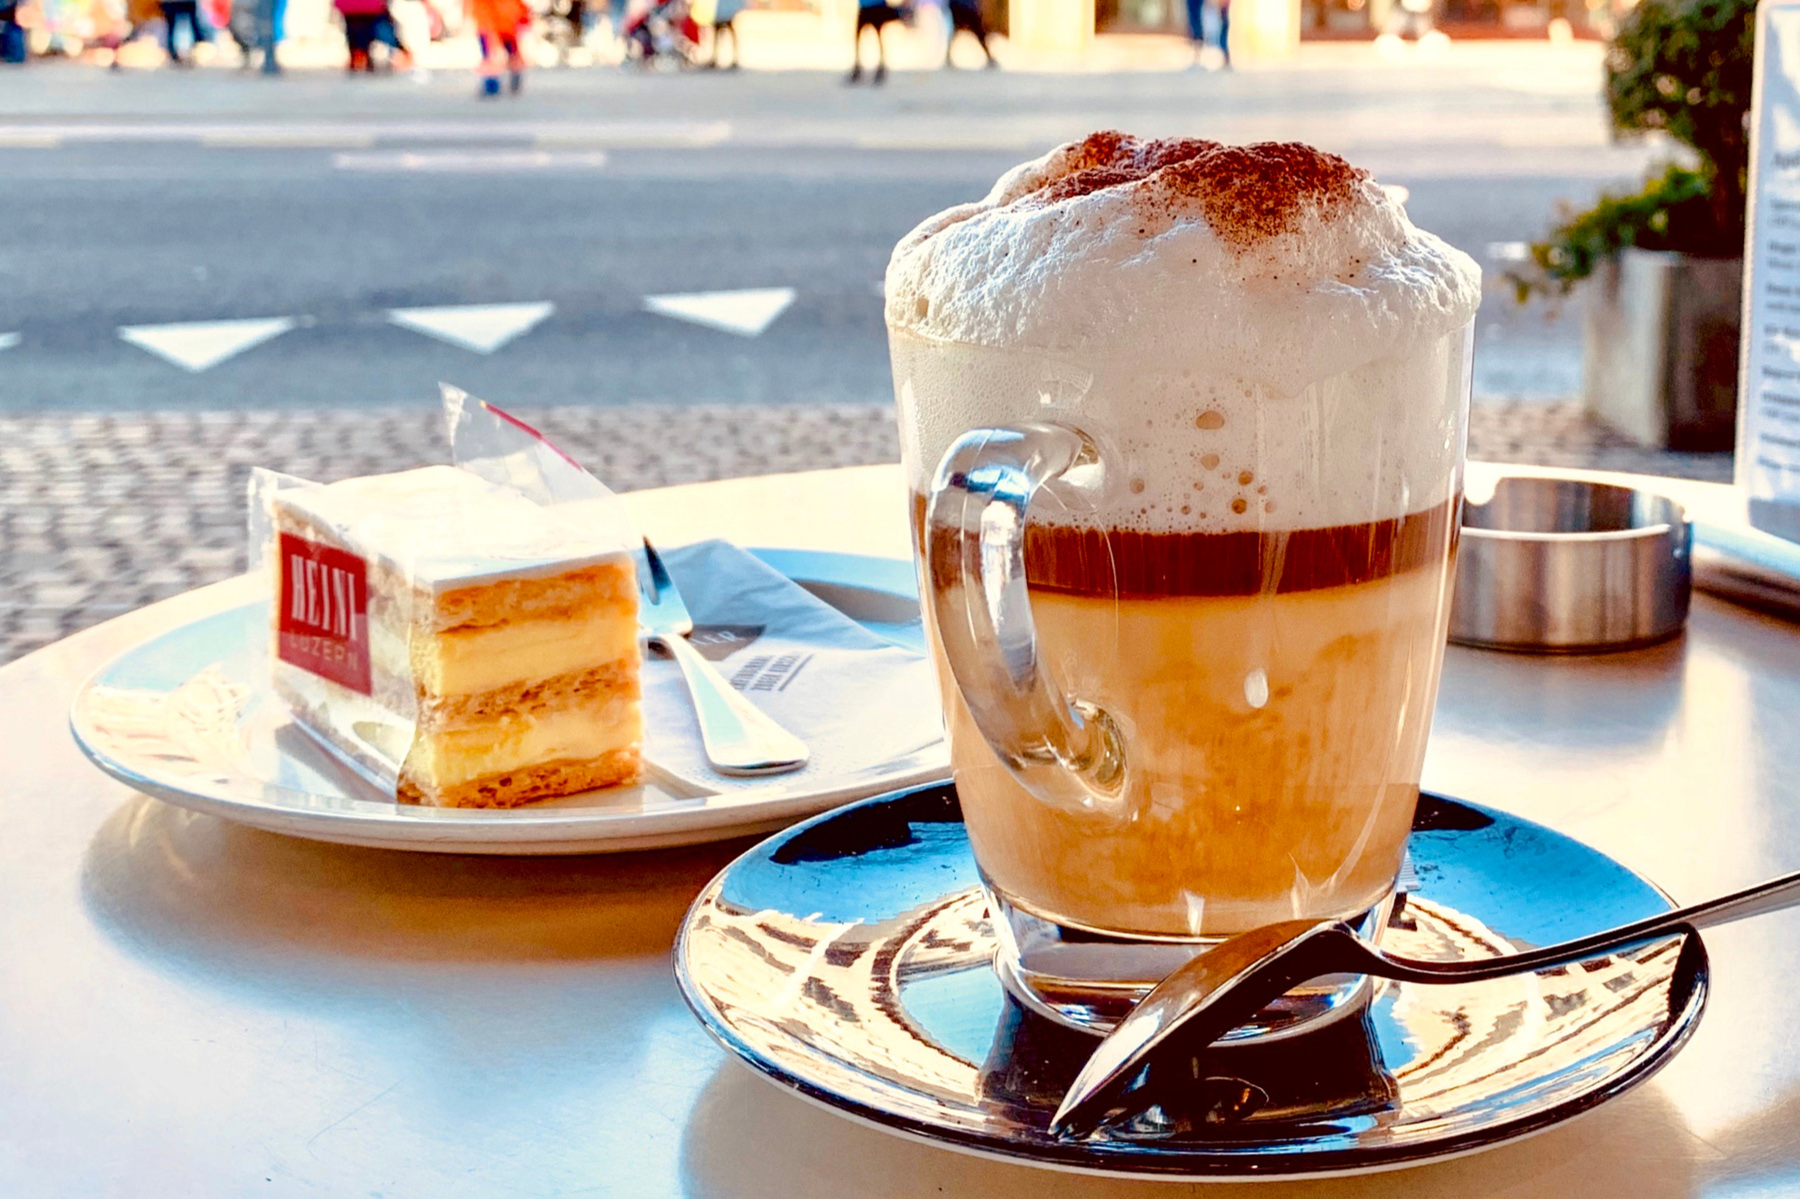 Coffee and cake on an outdoor terrace